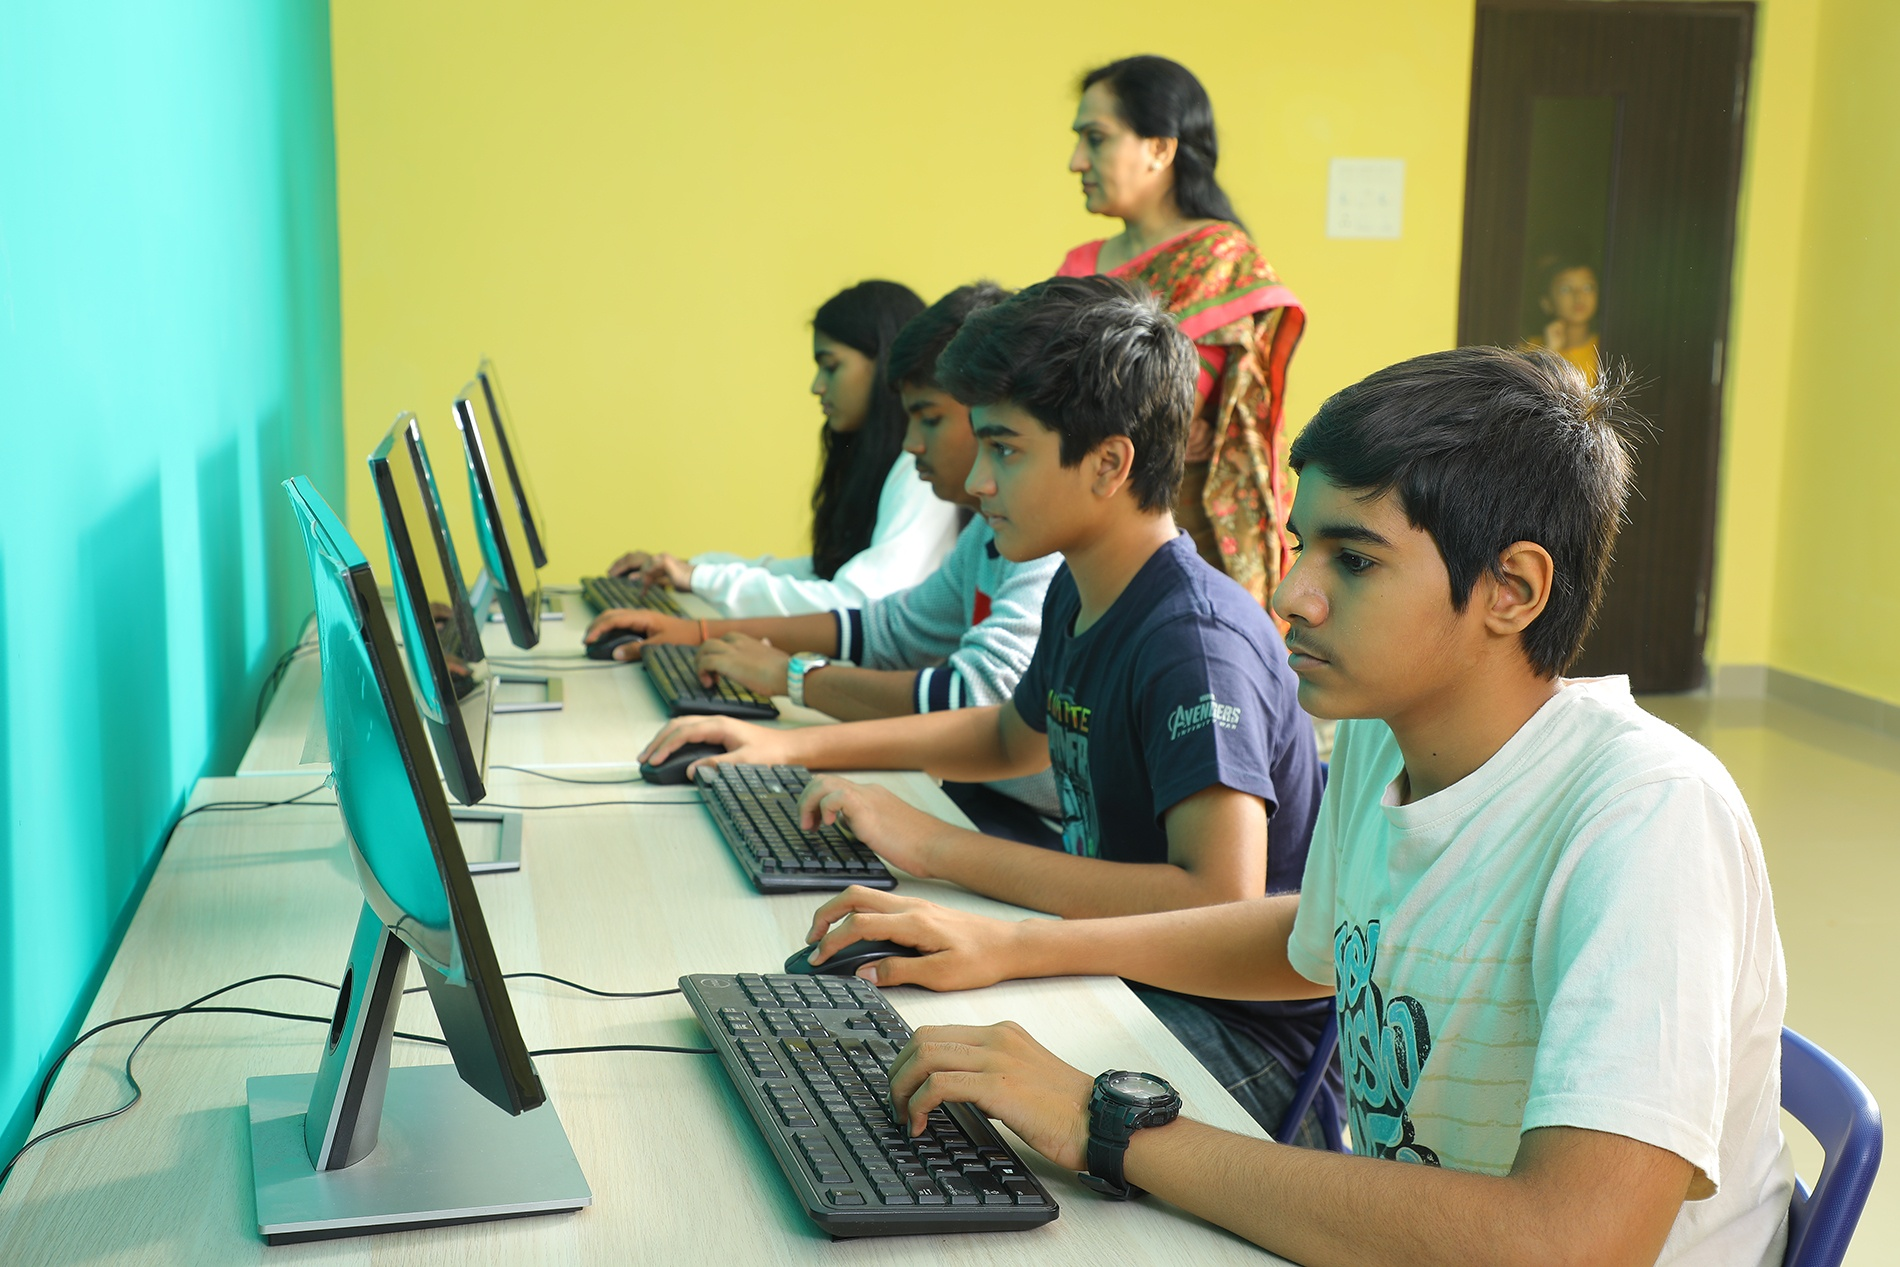 Best Tuition Centre in Hyderabad - ACME Preschool ACME Learning - Competitive Exam based Education Best Tuition Centre in Hyderabad. We focus on Competitive Exam based Education from the academic syllabus with Personalized coaching. maths tuitions in hyderabad maths tuition for class 12 near me maths tuition maths tuitions near me maths games for kids cool maths games maths abacus tuitions near me for class 10 home tuitions jobs near me tuitions for class 5 near me tuitions for class 10 near me tuitions for 10th near me tuitions for class 10 tuitions near me for class 7 tuitions available tuitions center near me tuition centres near me tuitions near me for class 9 telugu tuitions near me tuitions near me for class 1 tuition students tuitions for class 11 near me tuitions classes near me tuitions for class 7 near me tuitions near me tuitions nearby me english tuitions near me tuitions images tuition maths tuition centre name tuition classes advertisement tuitions near me for class 8 tuitions for class 9 near me tuition part time job tuitions at home tuition point tuitions hyderabad tuitions in hyderabad home tuitions in hyderabad tuitions classes tuitions near me for class 5 tuitions for 8th standard tuitions for 8th standard near me tuitions for 10th cbse near me tuitions for maths near me economics tuition tuition means tuition means